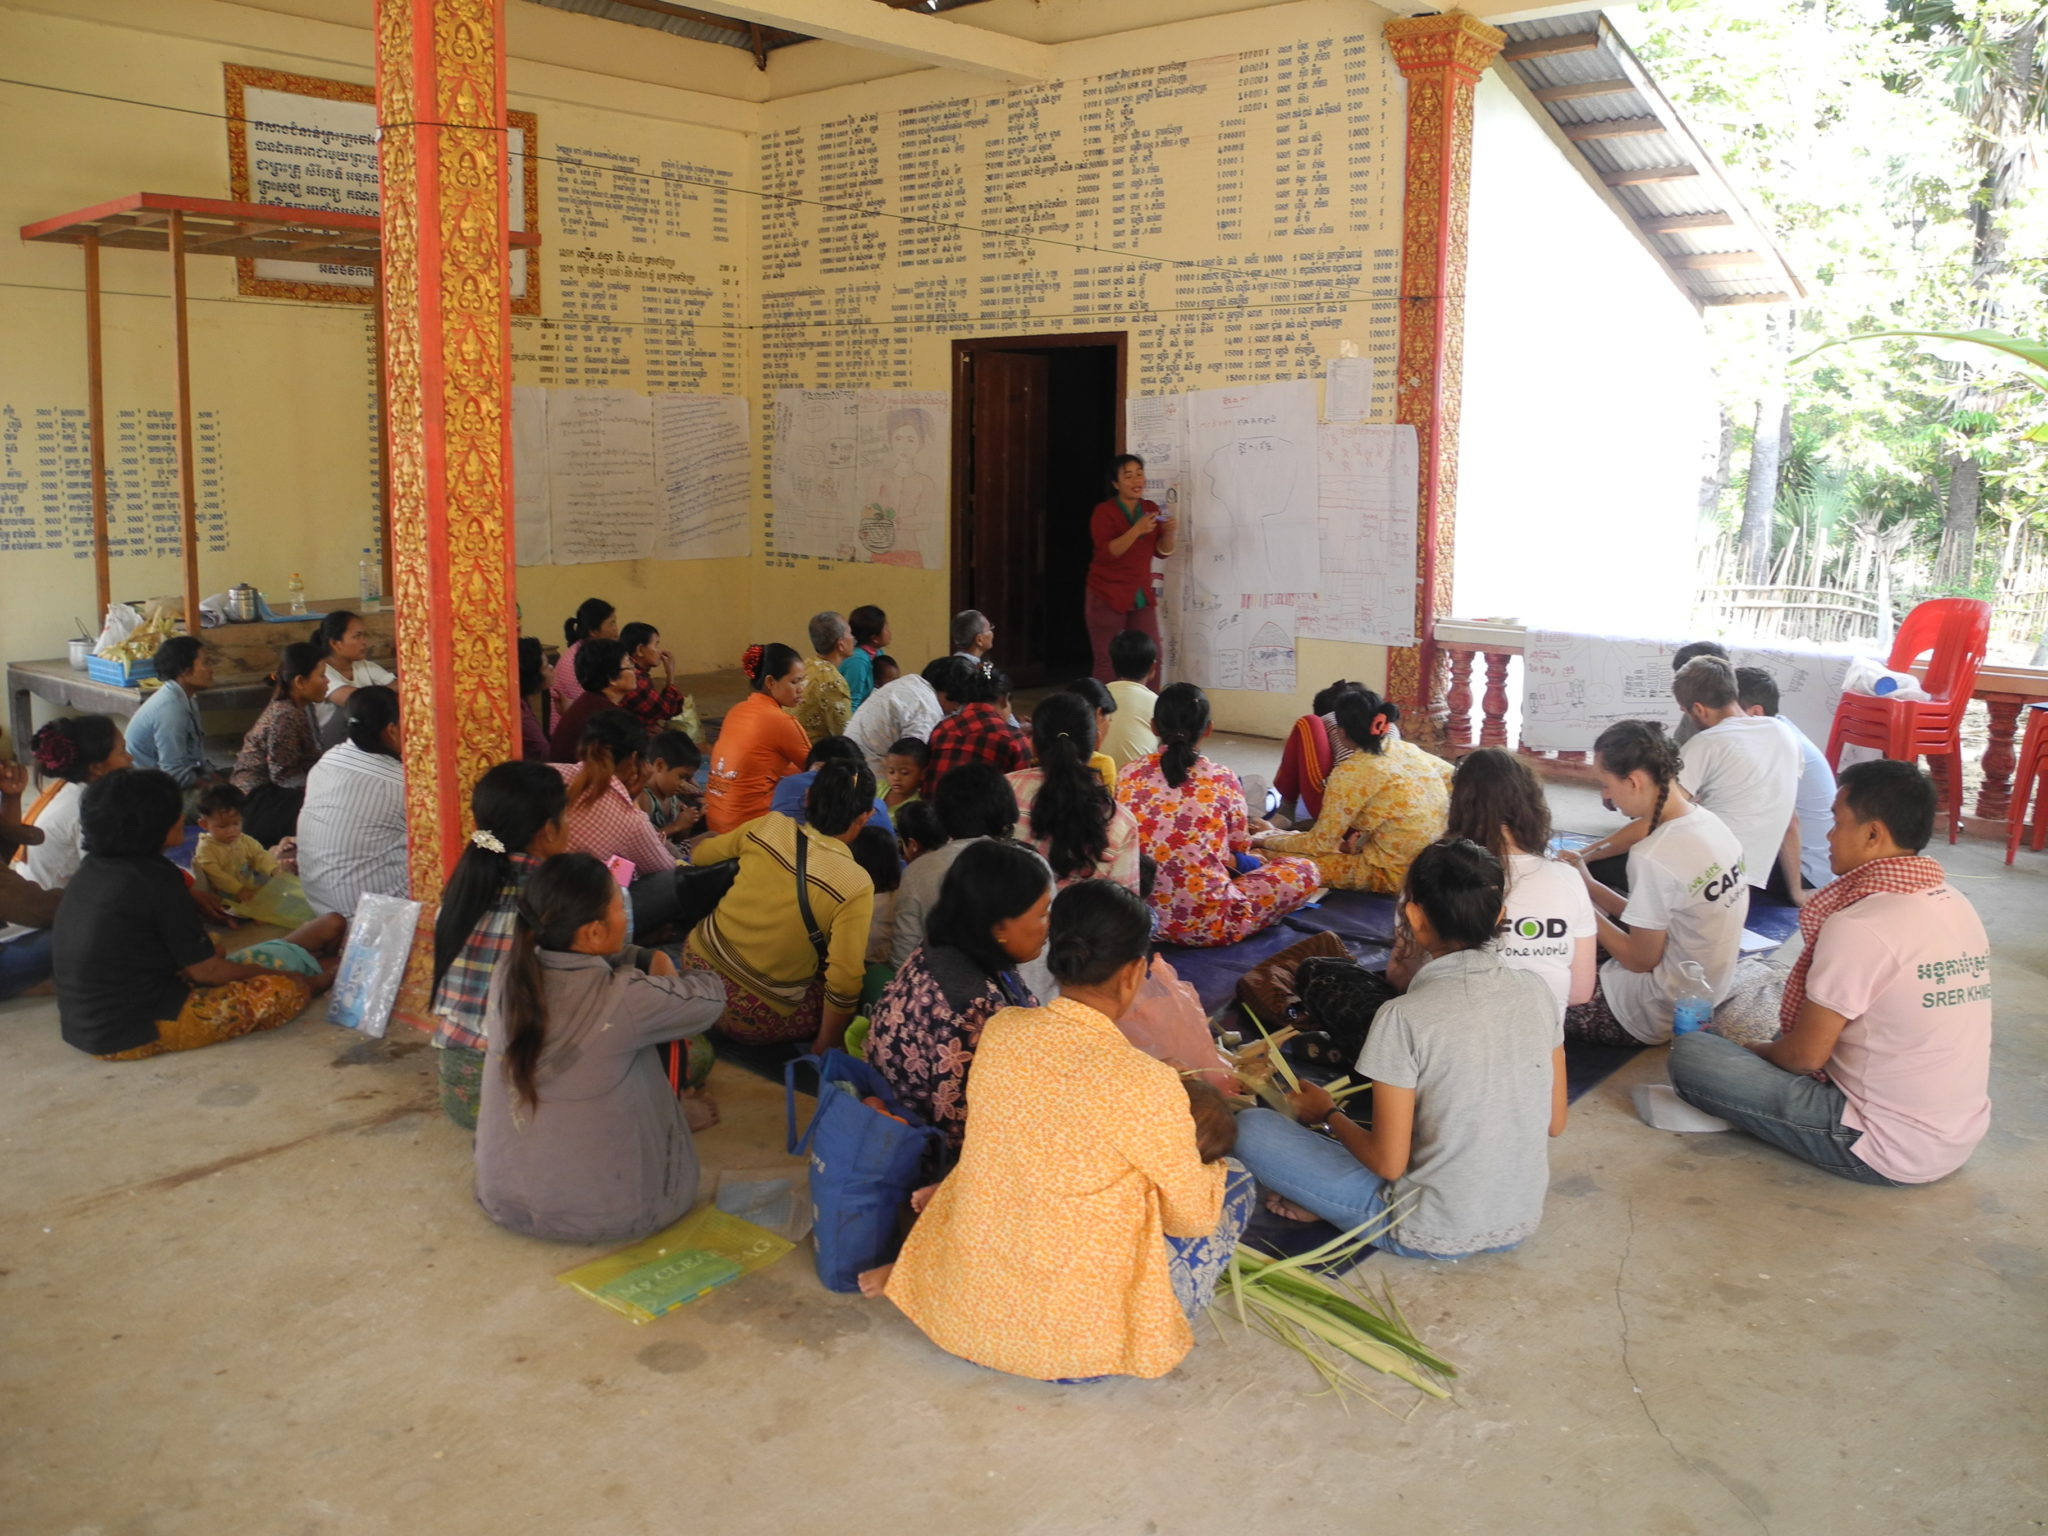 The women's self-help group CAFOD's partner Srer Khmer supports